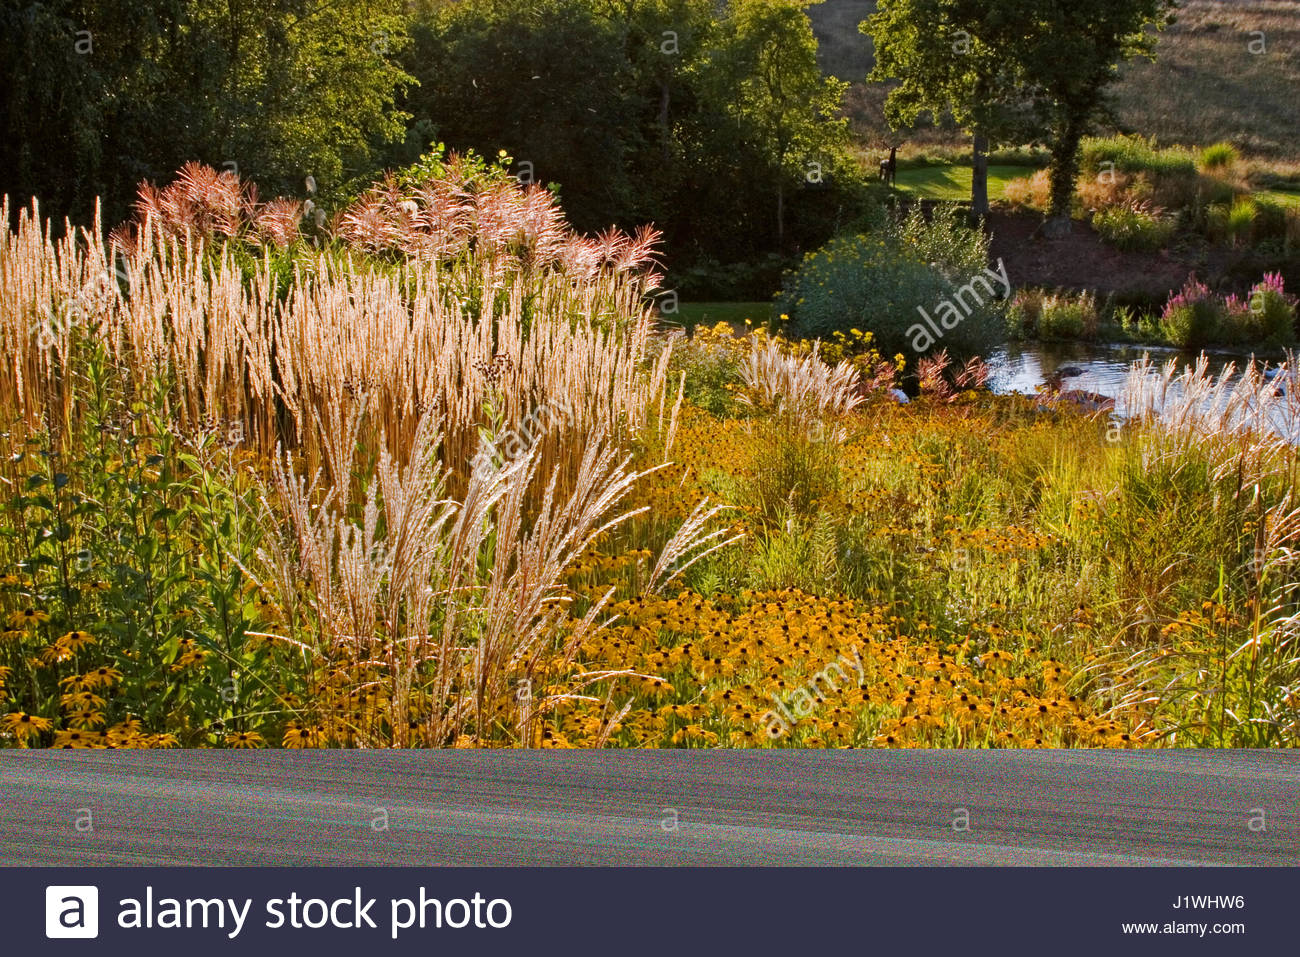 Attractive Farm Garden Photo - Brown Nature Garden ...